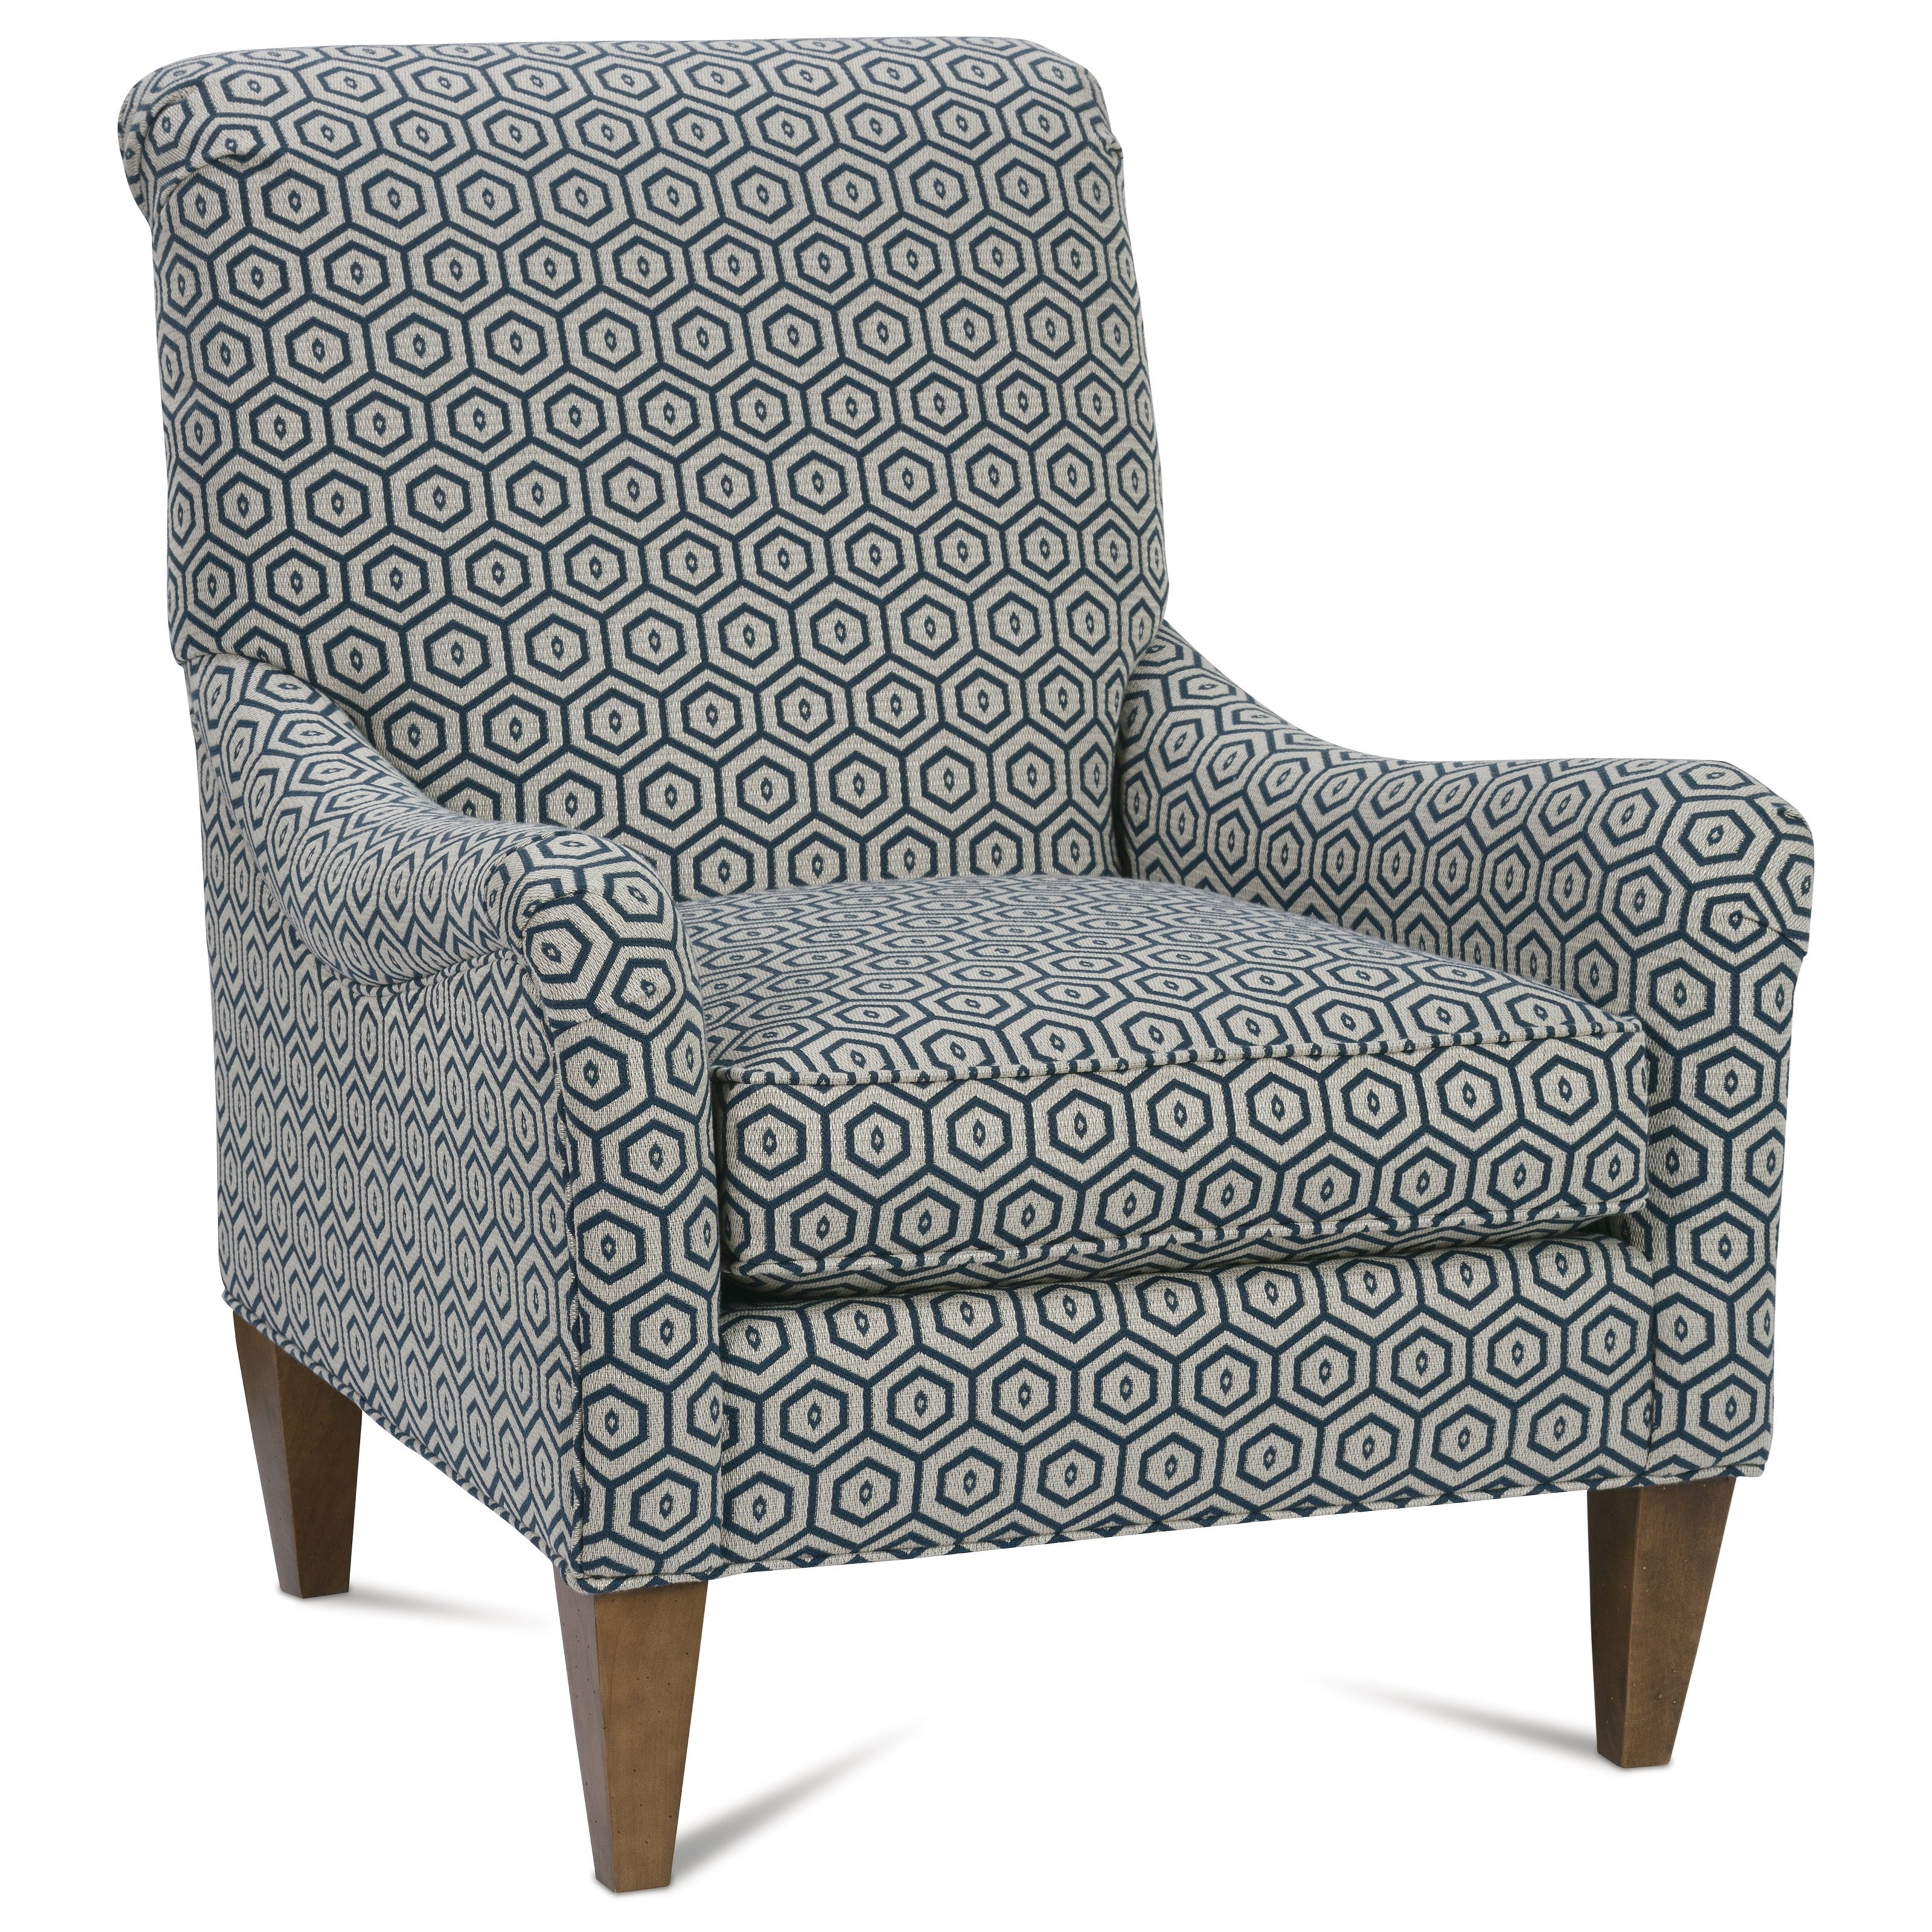 Chairs and Accents Highland Chair by Rowe at Johnny Janosik